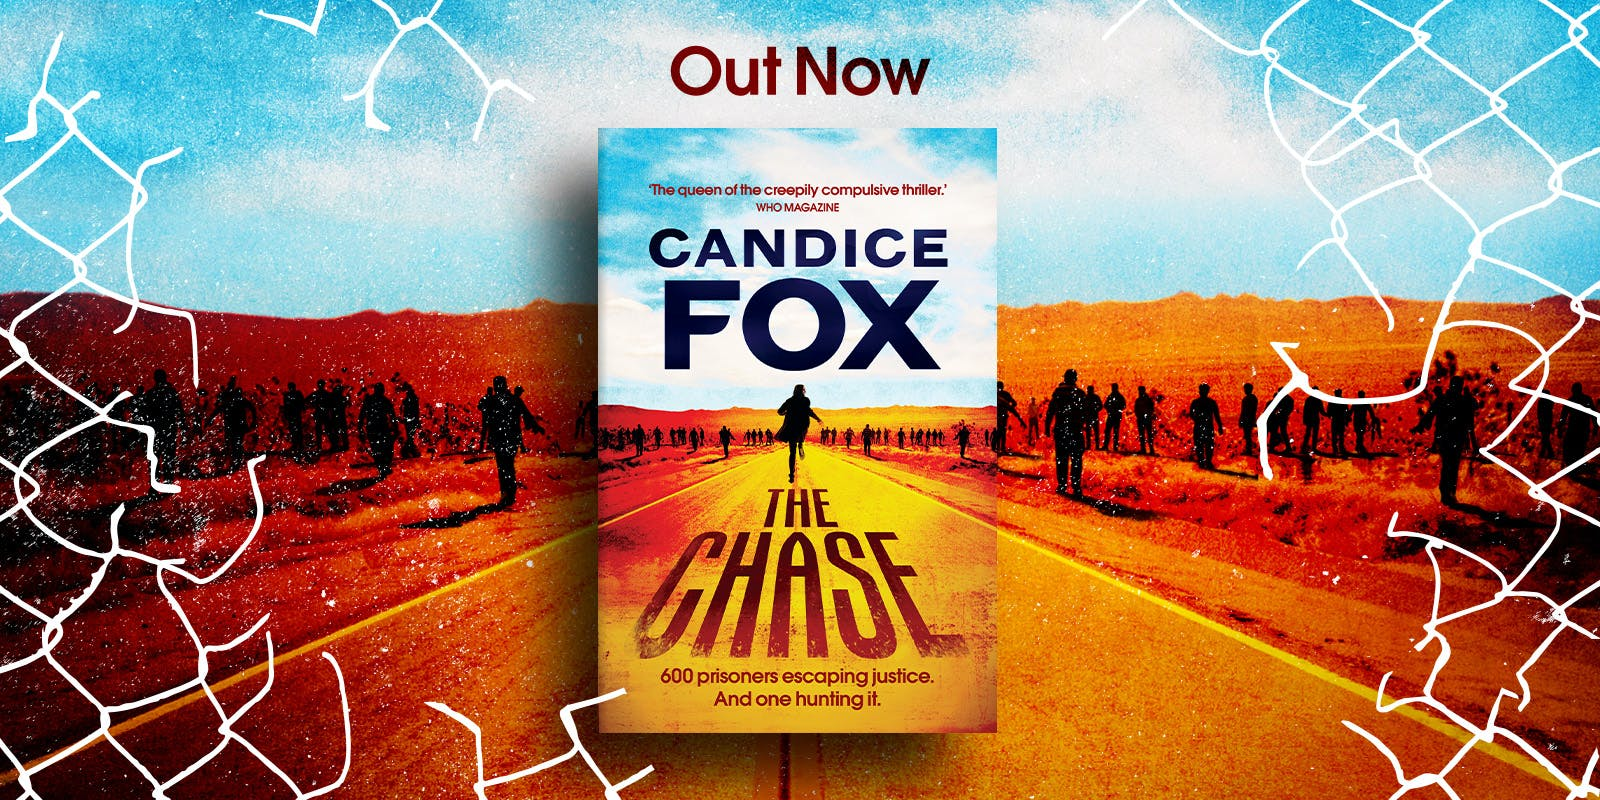 The Chase book club notes